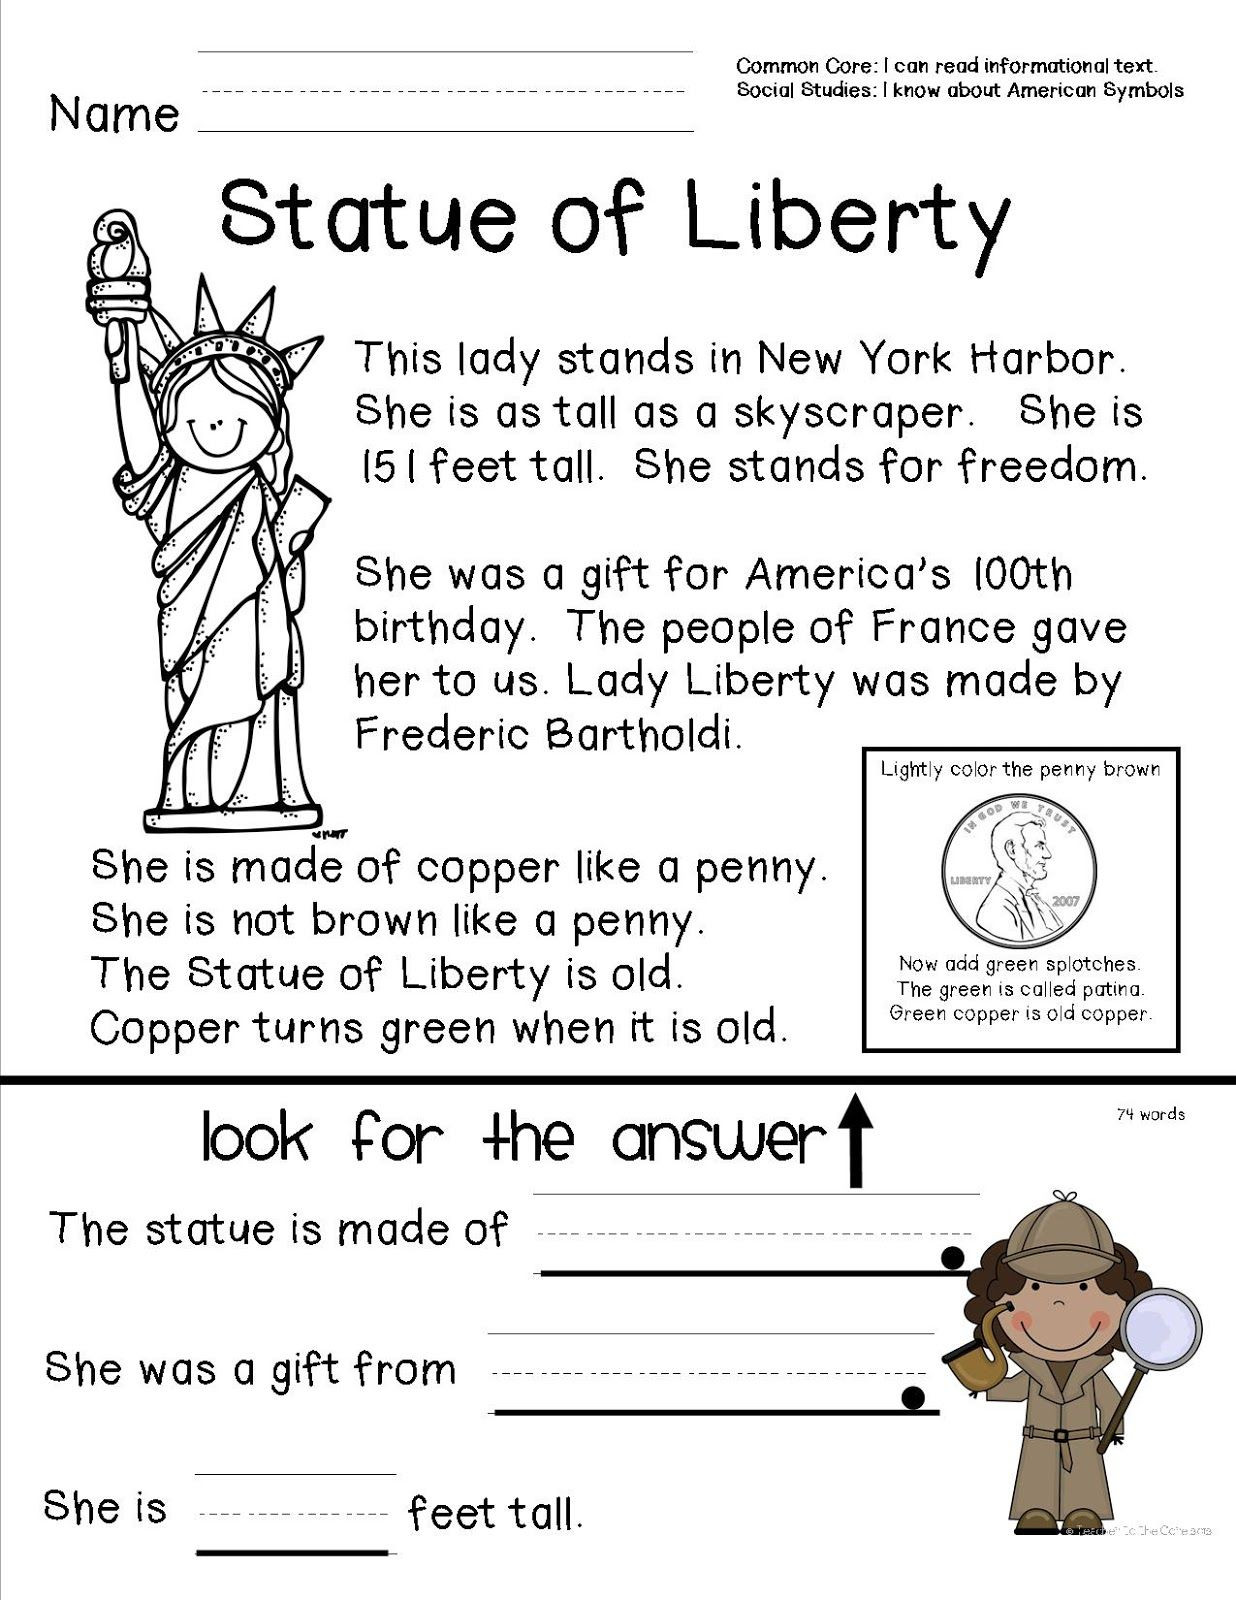 Social Studies Worksheets 2nd Grade American Symbols